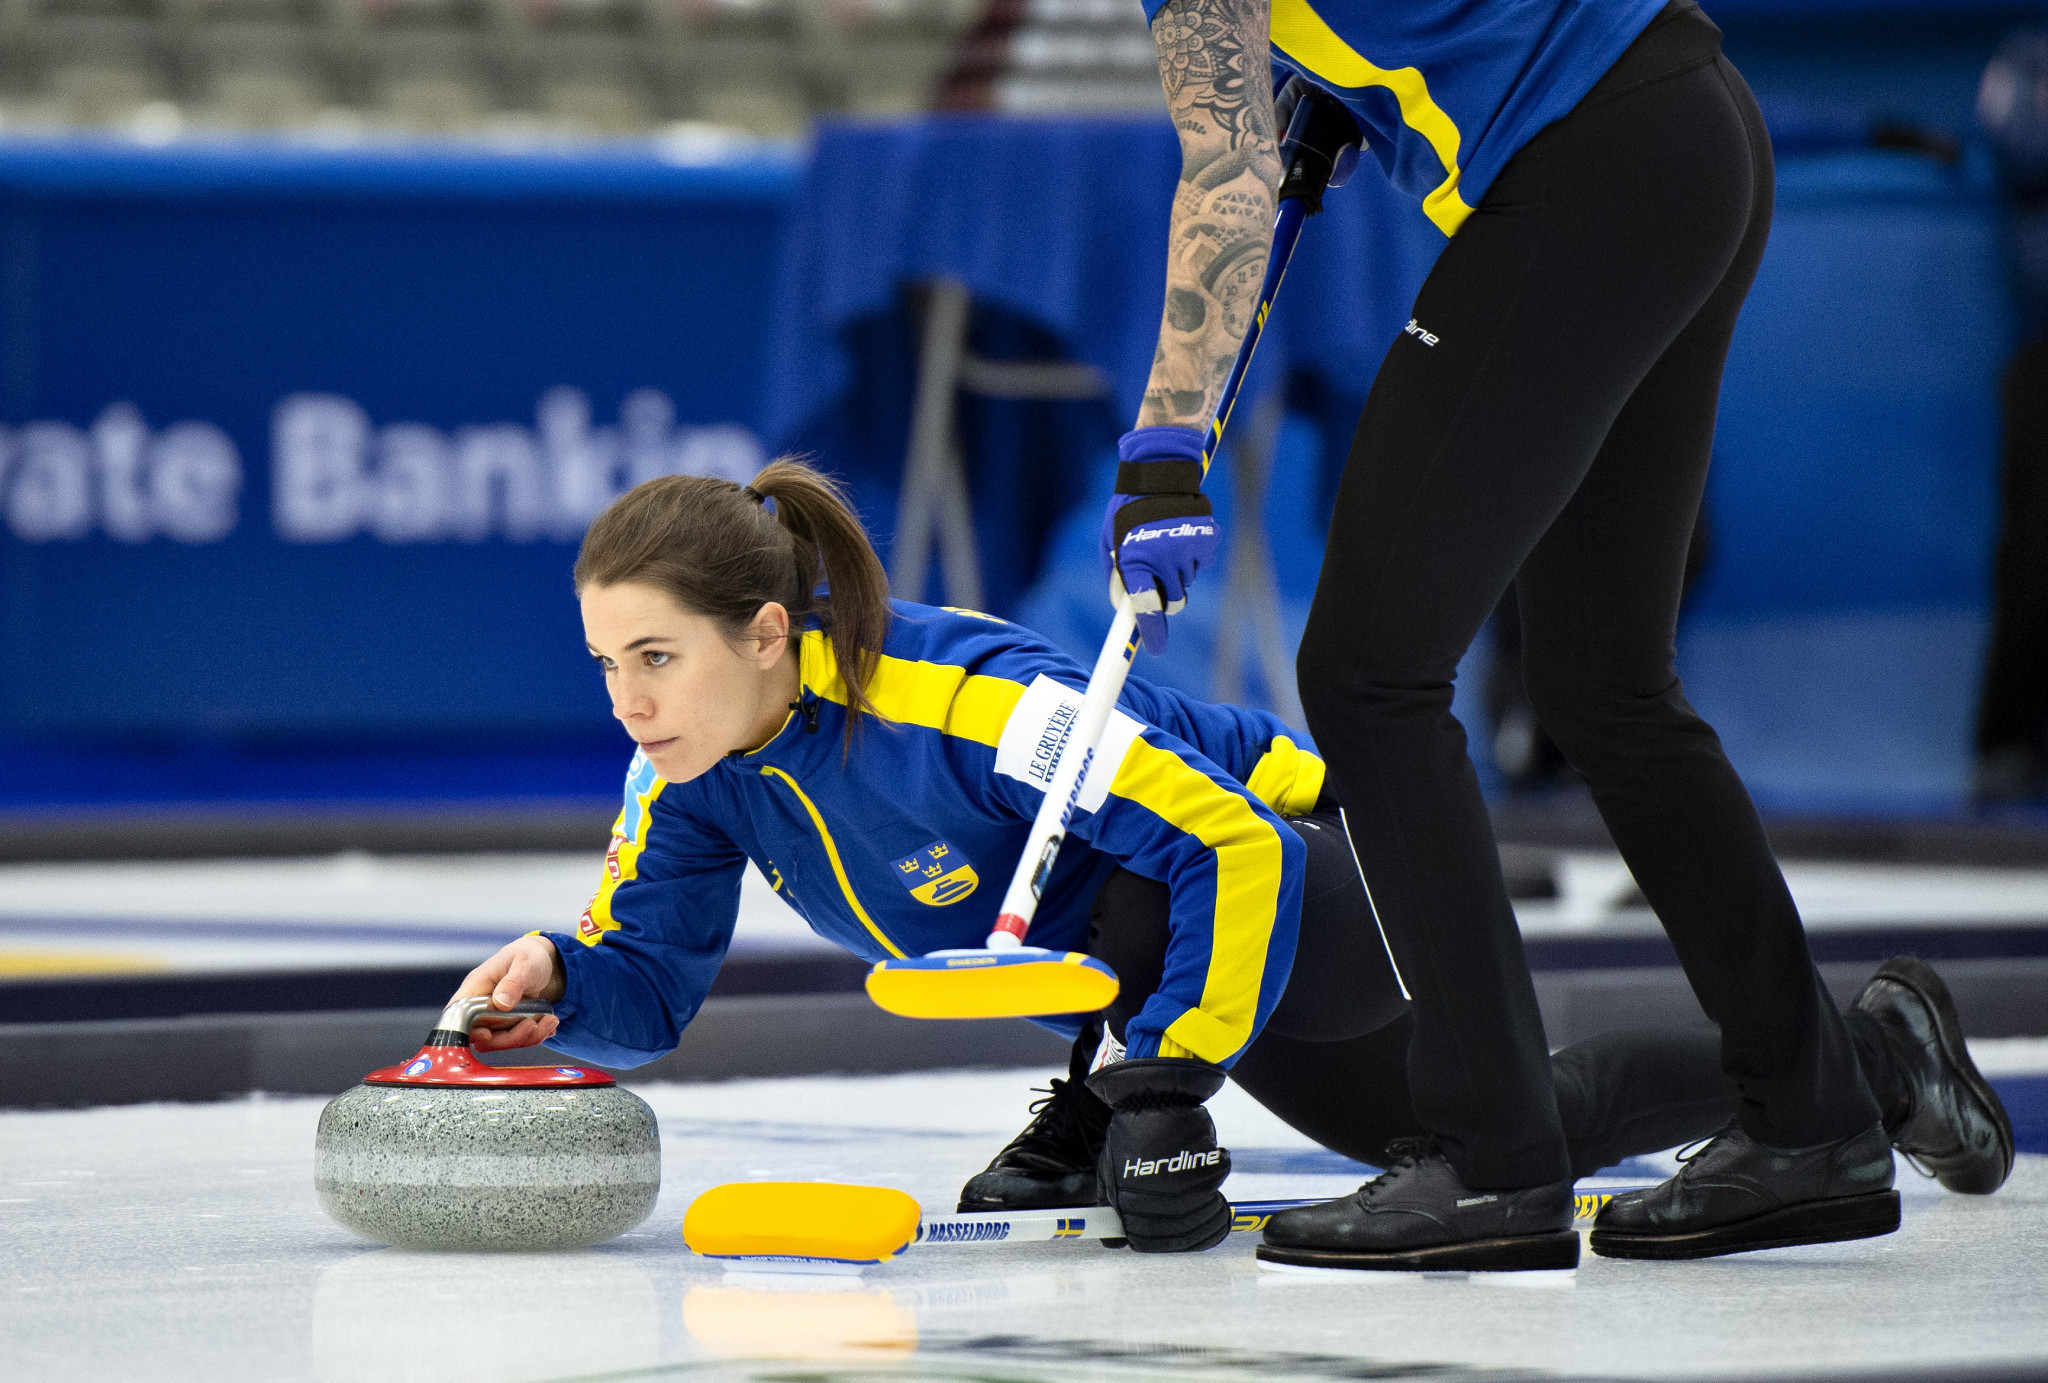 Hasselborg and Jacobs close to third consecutive Grand Slam of Curling titles at Canadian Open